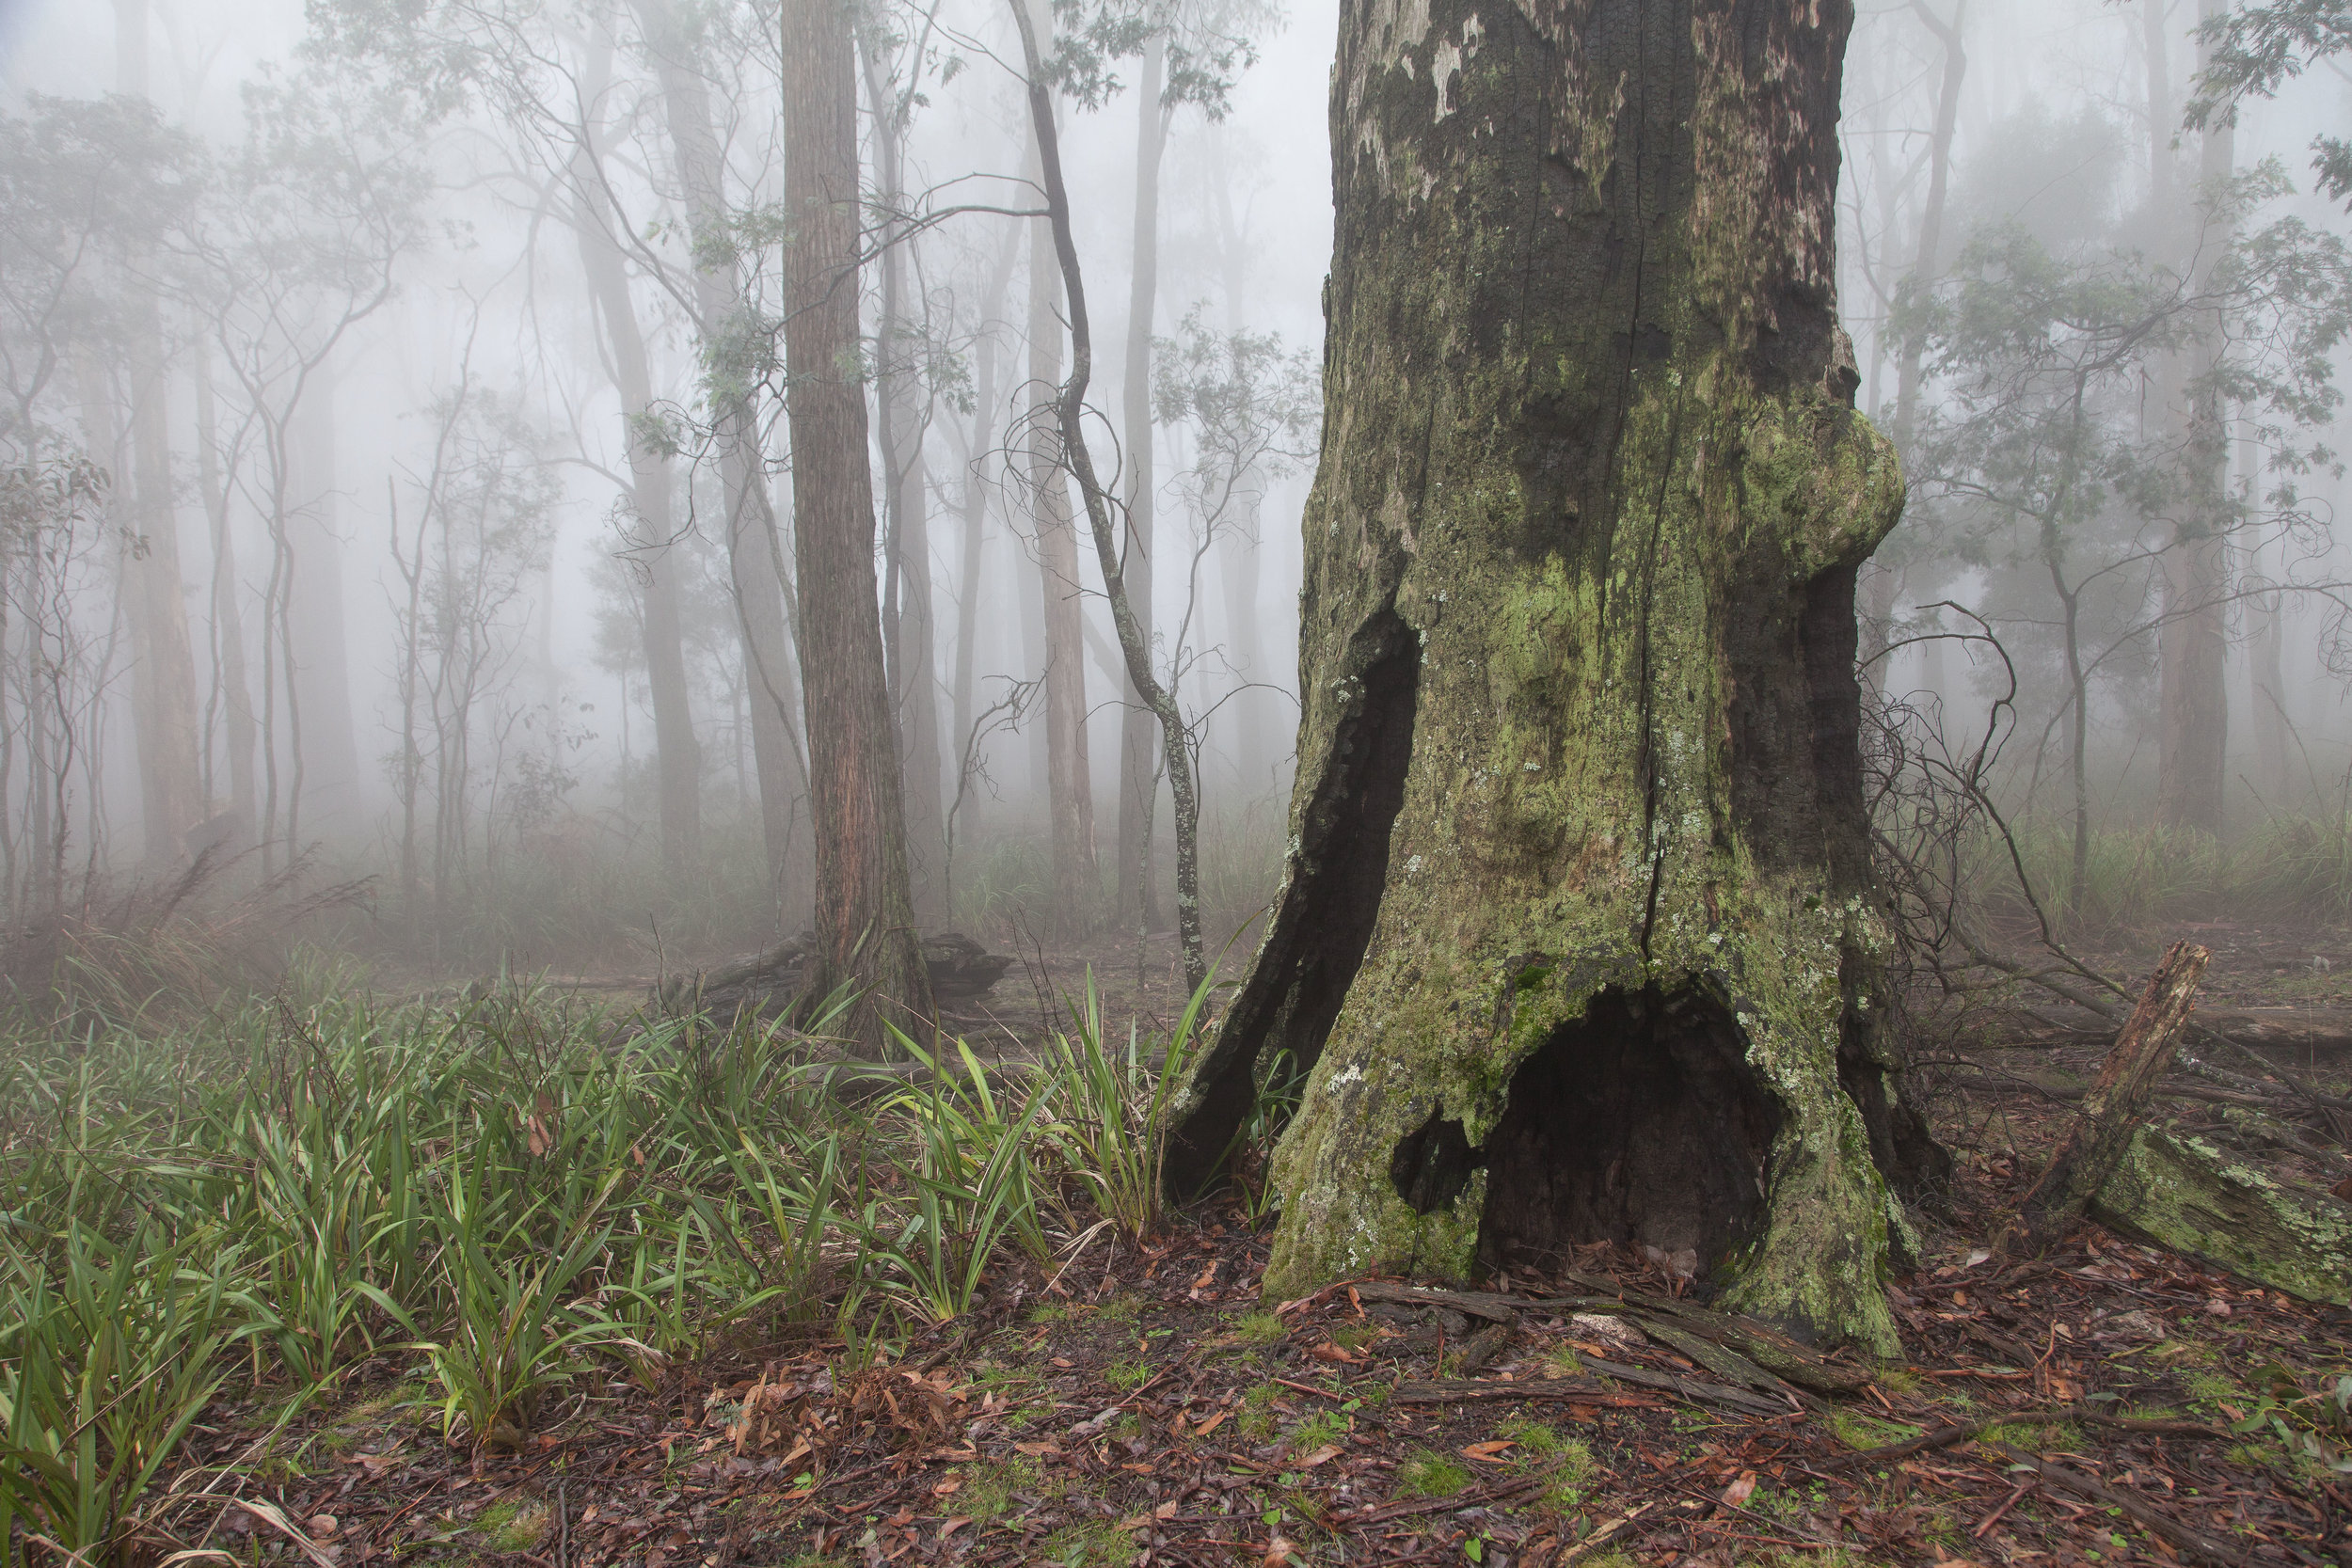 Immense eucalypts, Powerful Owls and Greater Gliders are just some of the impressive organisms to be found in this ancient forest.  Image: Michael Flett